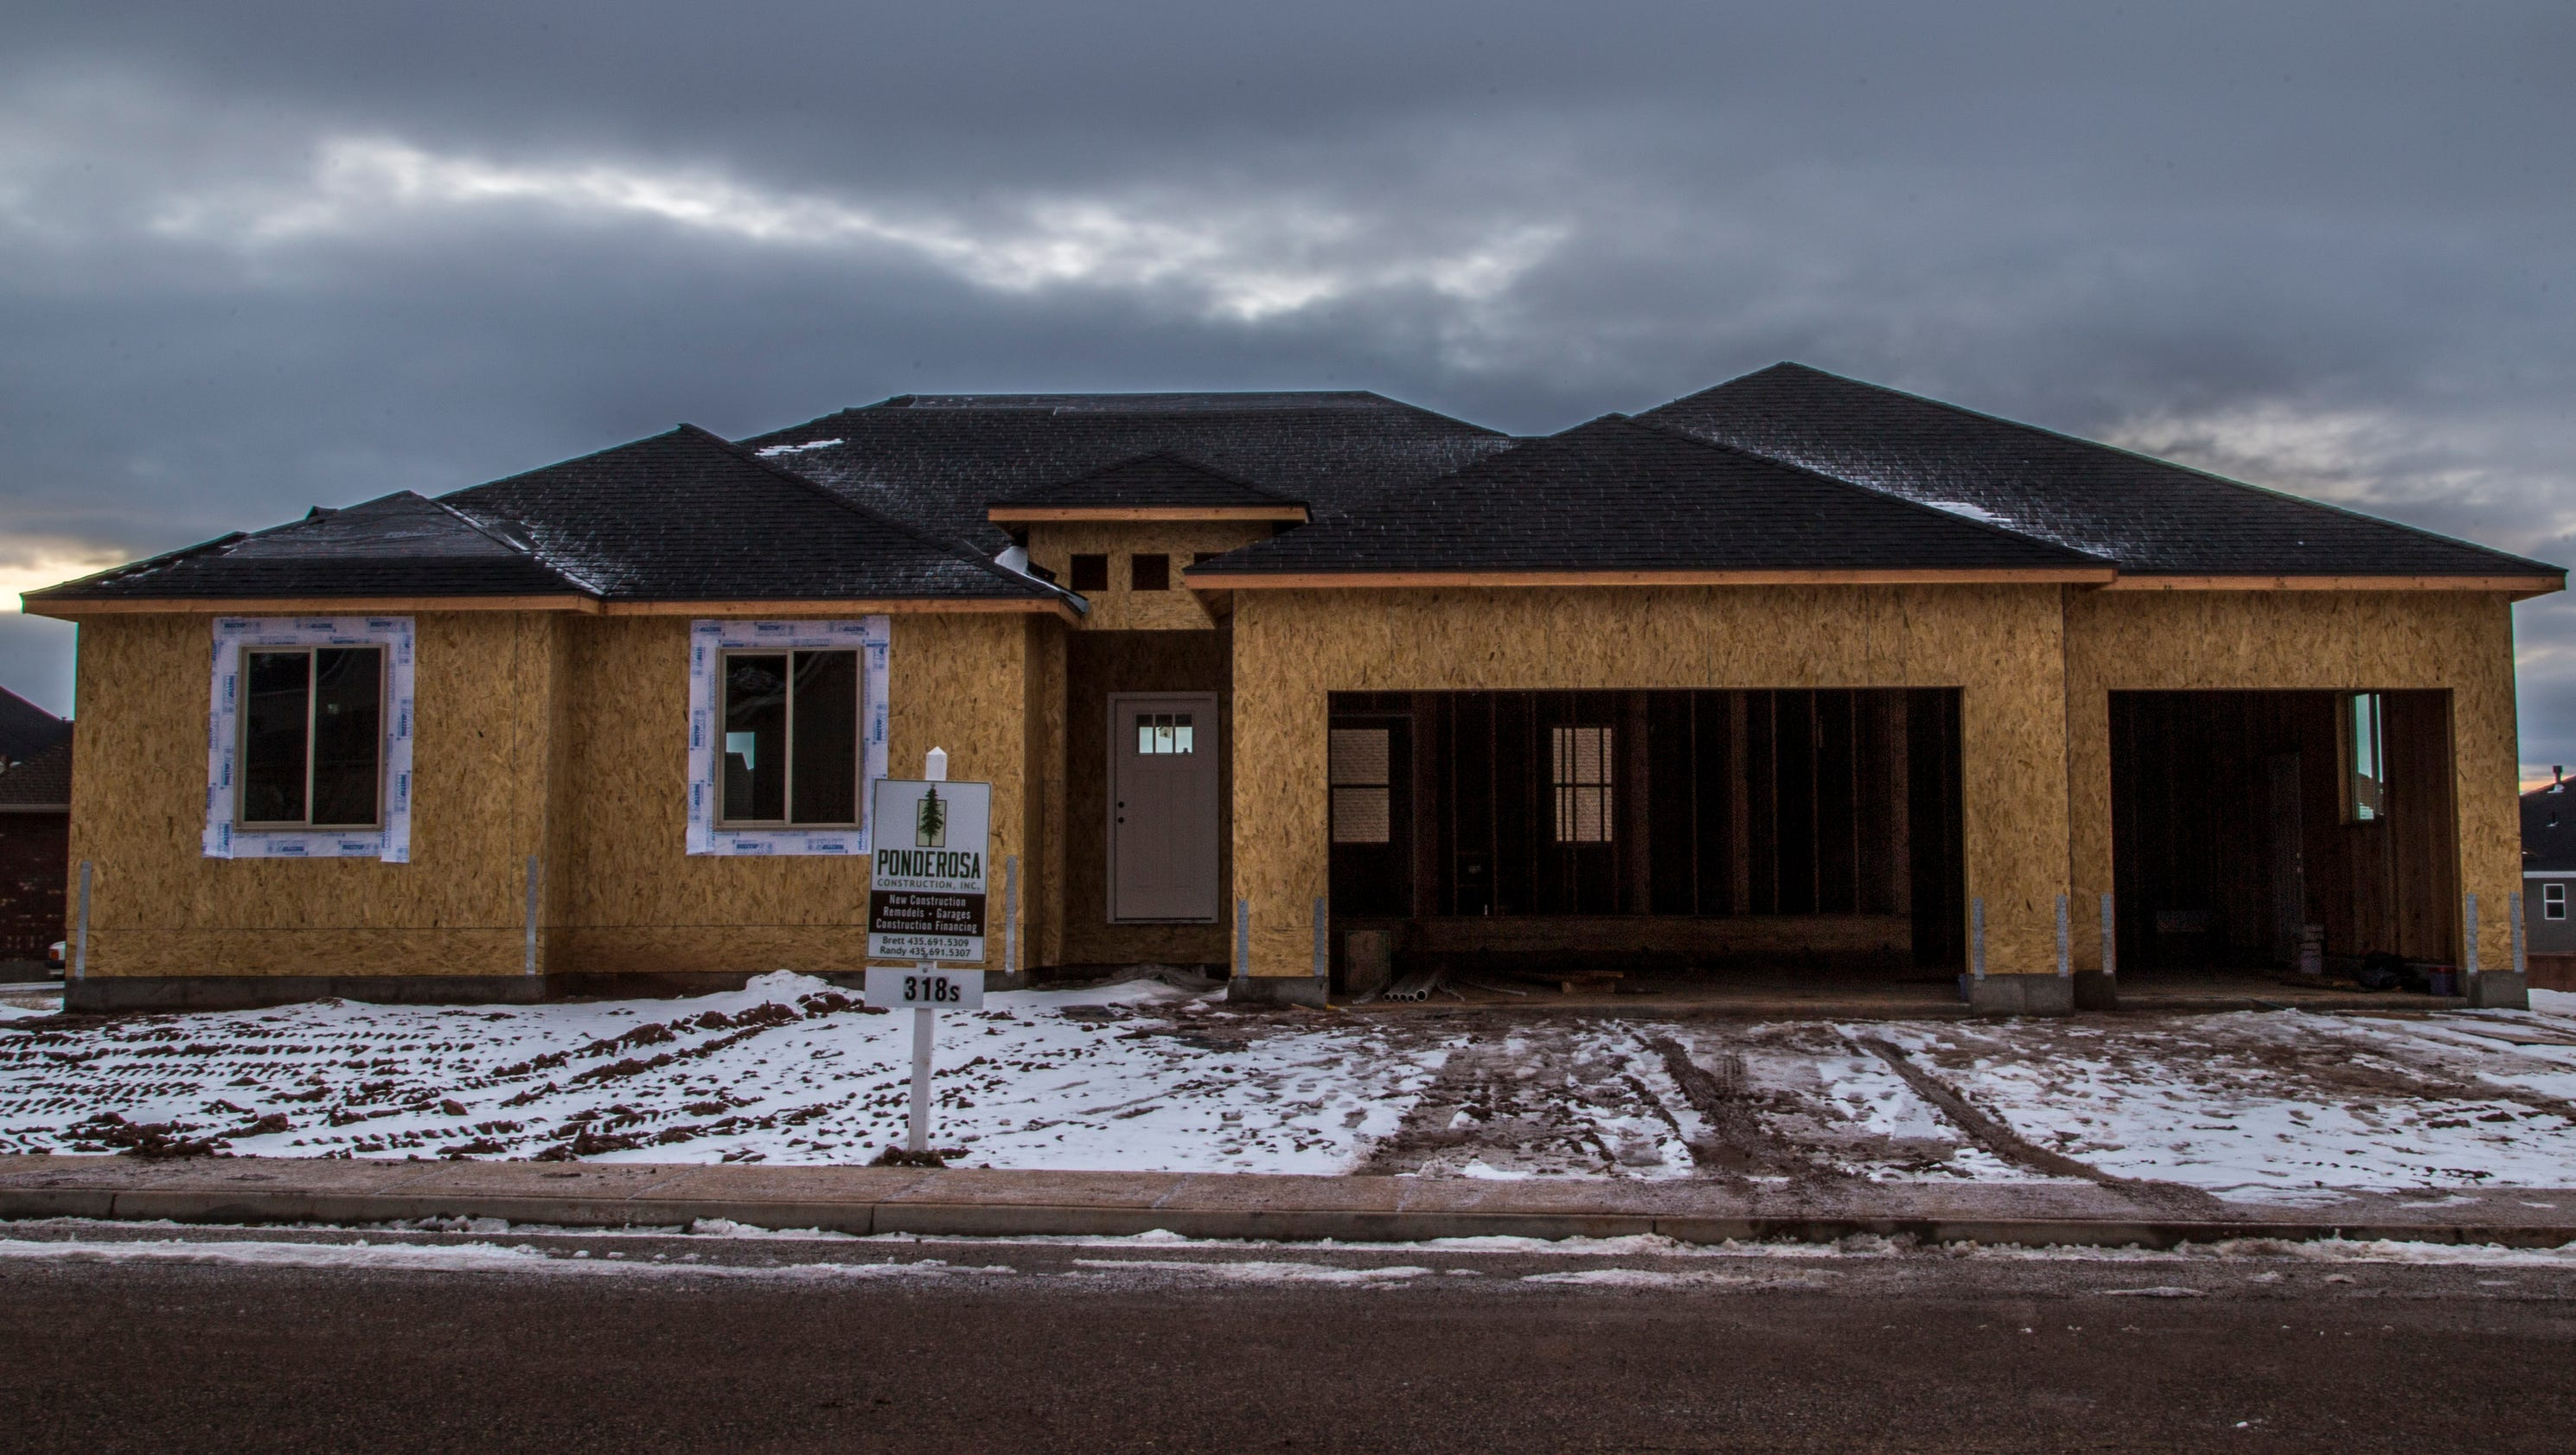 Real estate prices rising around cedar city lds temple for Mansion prices